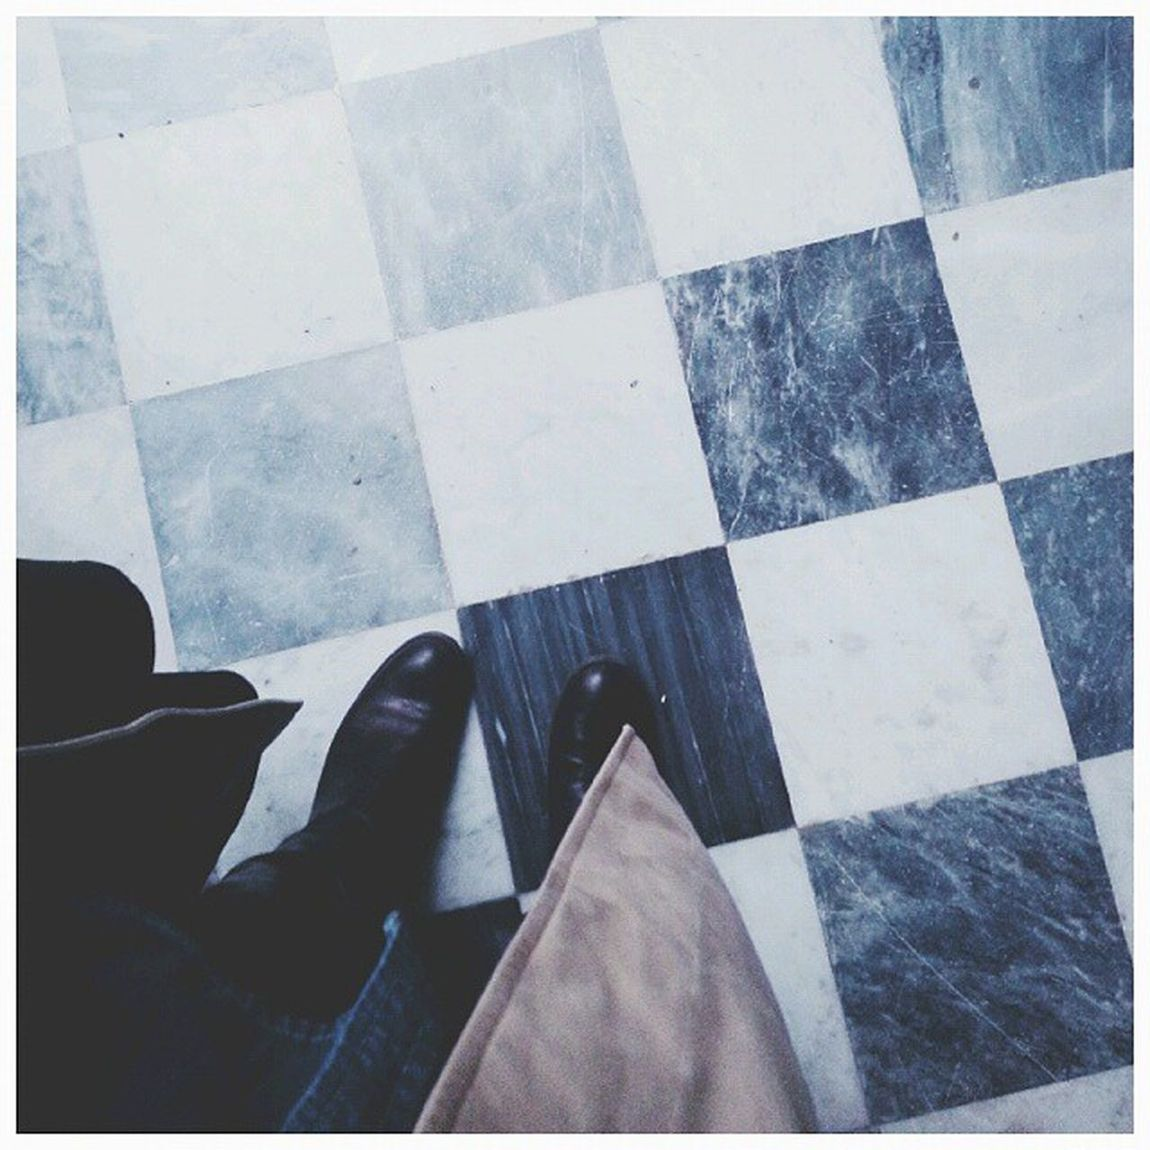 Open to suggestions... next move?? Fromwhereistand Fromwhereyoustand Tilesaddiction Tileporn Tiles Floorselfie Ihavethisthingwithfloors Viewfromthetop Viewfromthetopp Vscokingdom Vintagefloors Igersitalia Ig_florence Amazingfloorsandwanderingfeet Ihavethisthingwithtiles TiledFloor